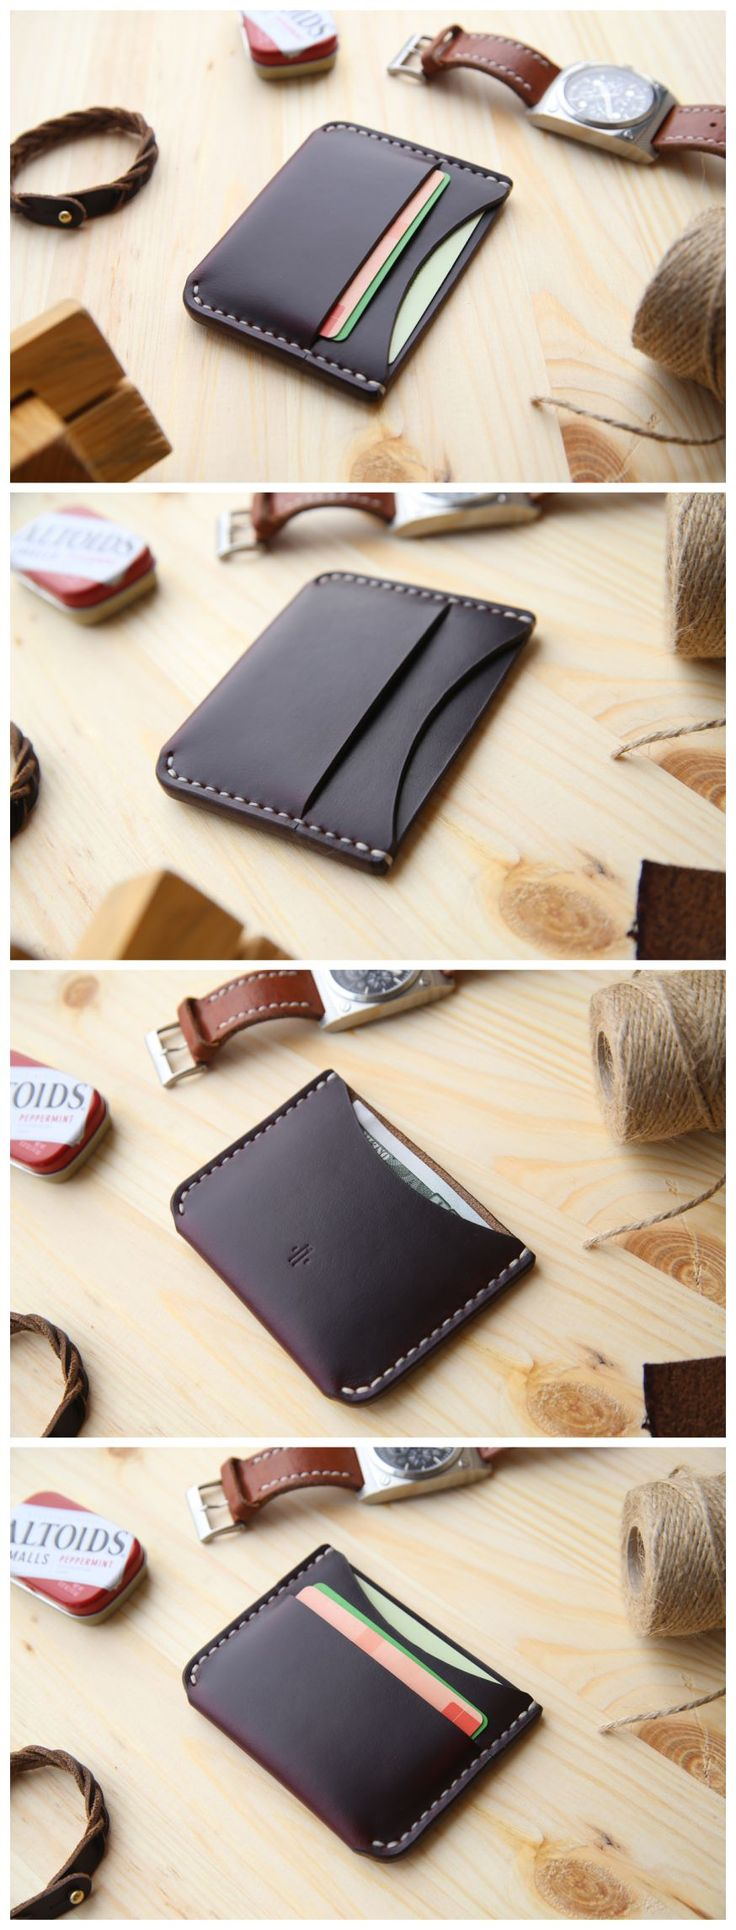 Card Holder Wallet in Horween Chromexcel #8 #manufacturabrand#accessories #wallet #leather#handmade#leathergoods #everydaycary#vegtanleather#handcraft #handstitched#leathercraft #cardholder #cardwallet#horween #horweenwallet